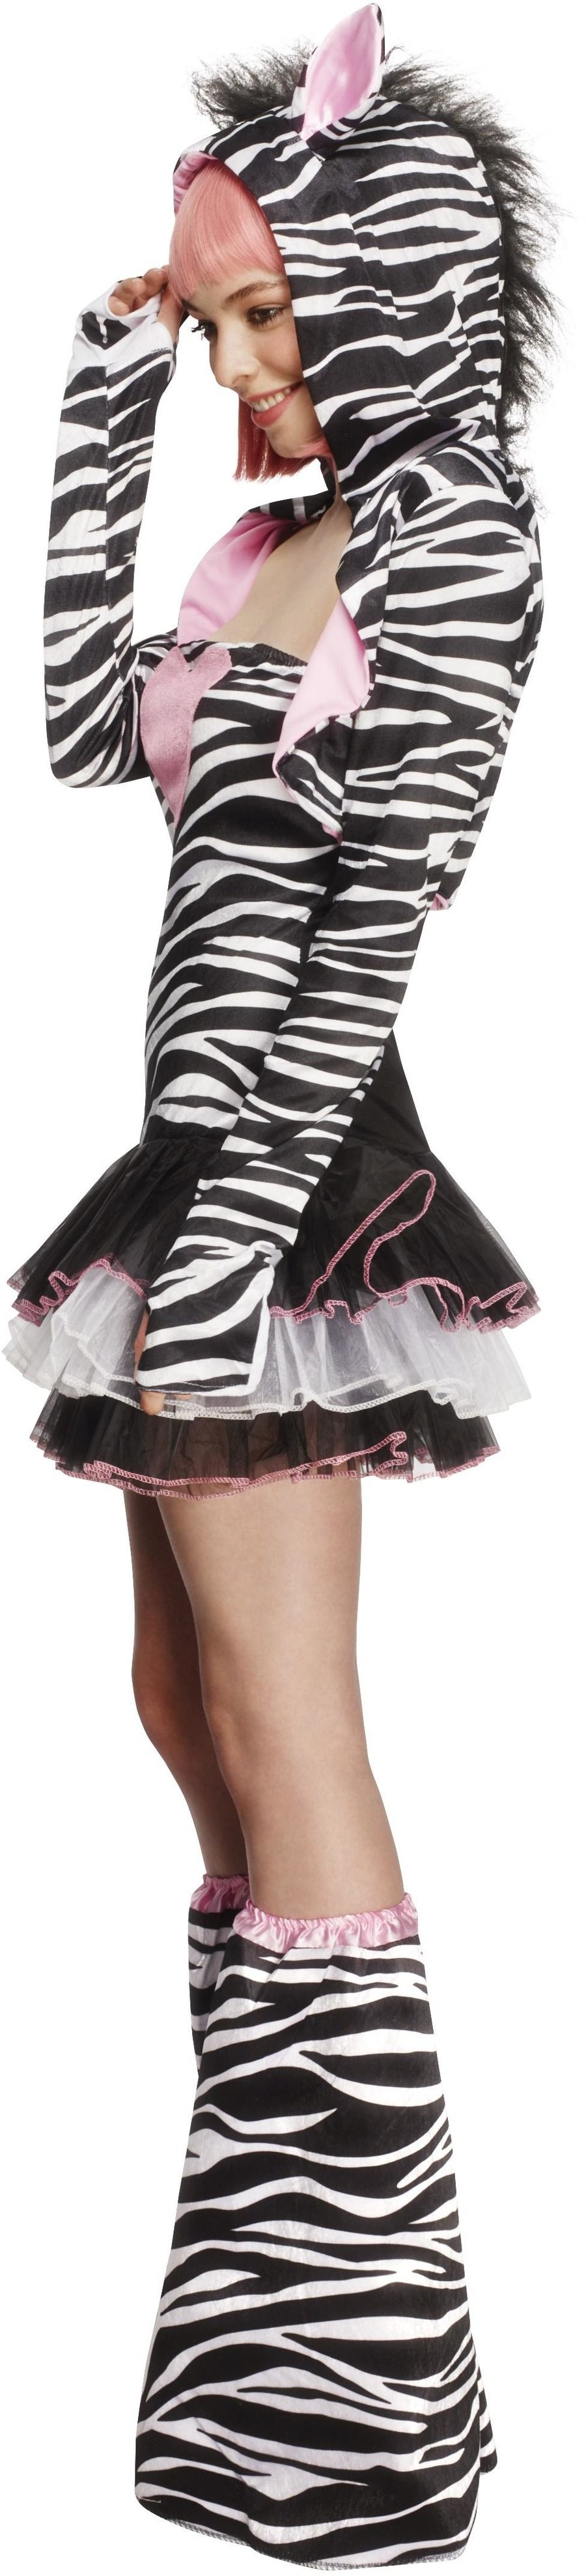 costum-zebra-fever-halloween